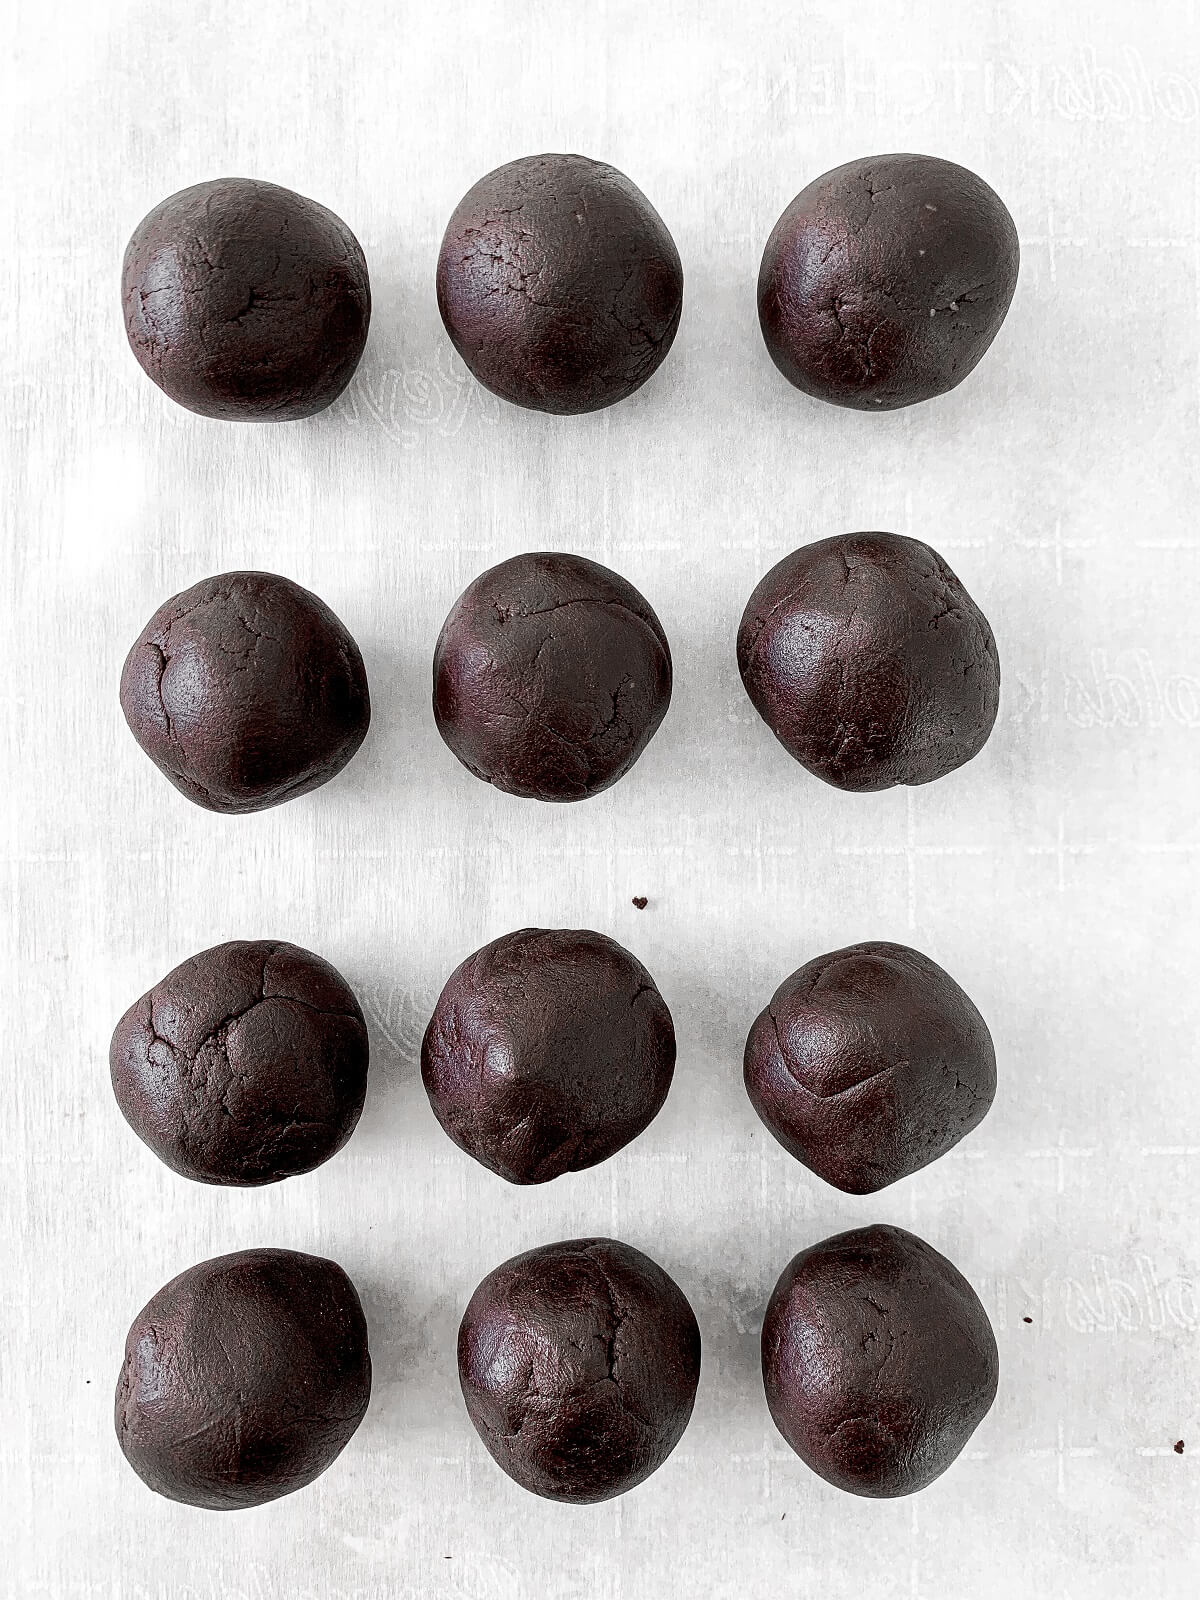 Chocolate shortbread cookie dough, rolled into balls.